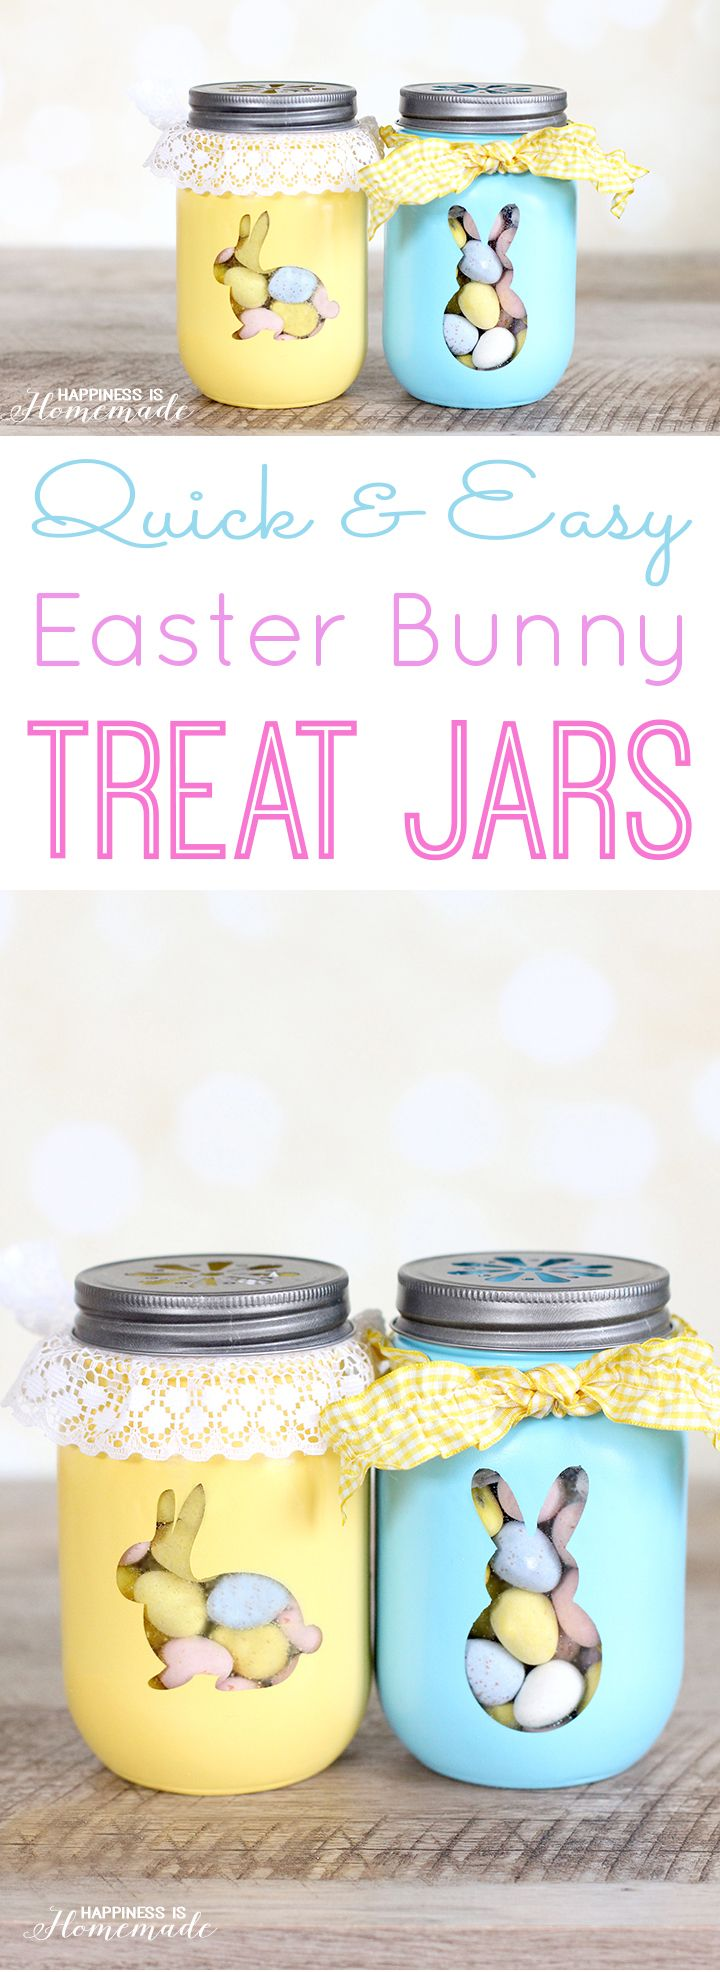 32 best easter stuff images on pinterest easter crafts easter quick easy easter bunny treat jars negle Choice Image